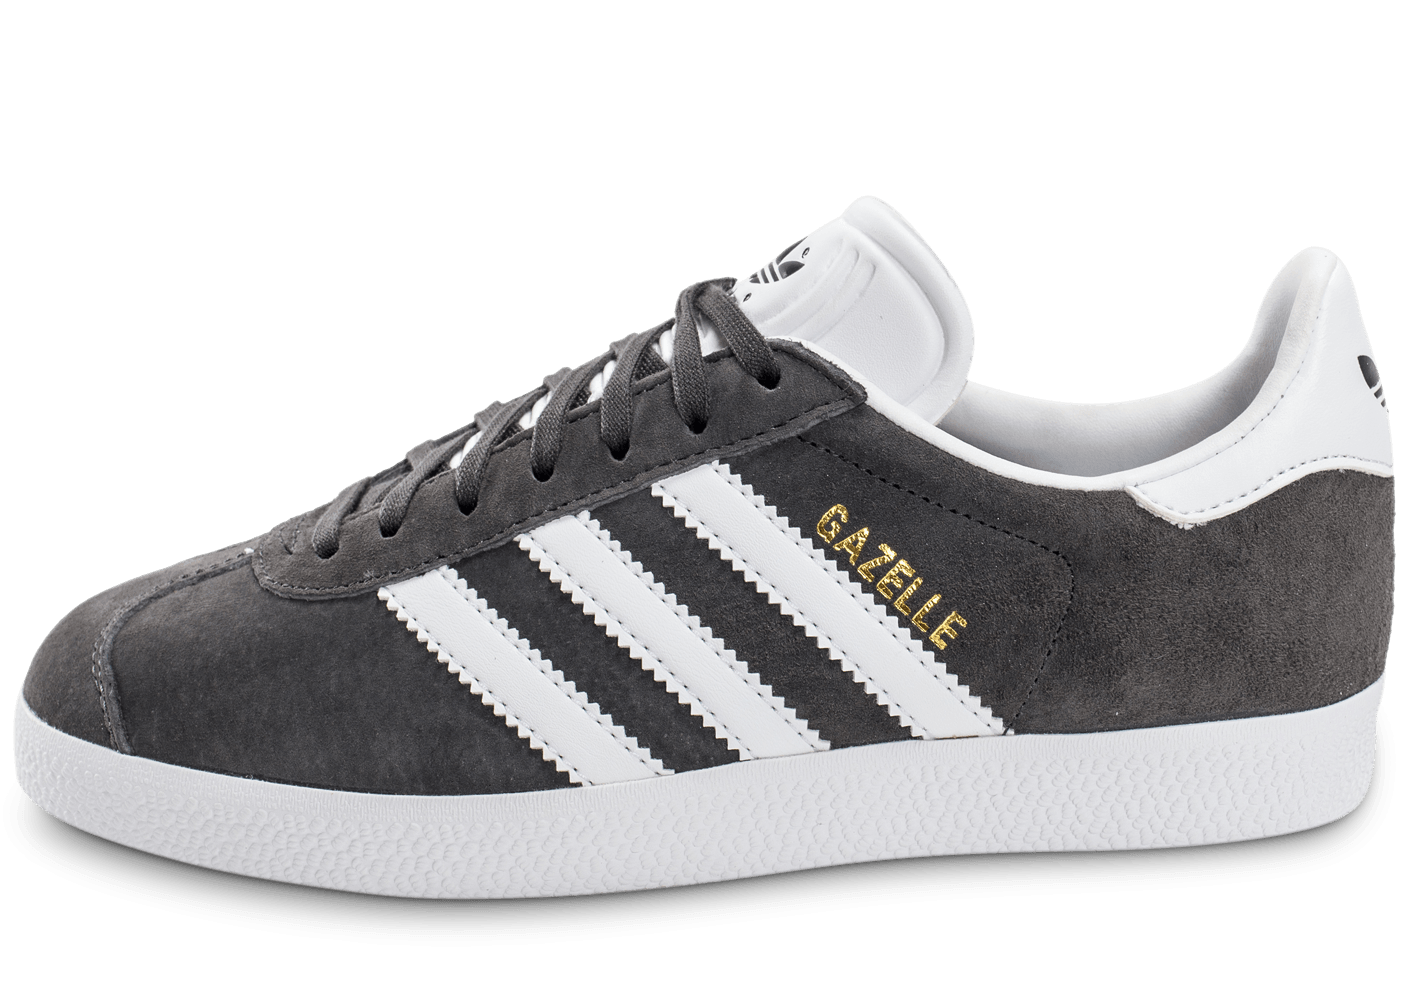 adidas gazelle femme chausport chaussures de. Black Bedroom Furniture Sets. Home Design Ideas